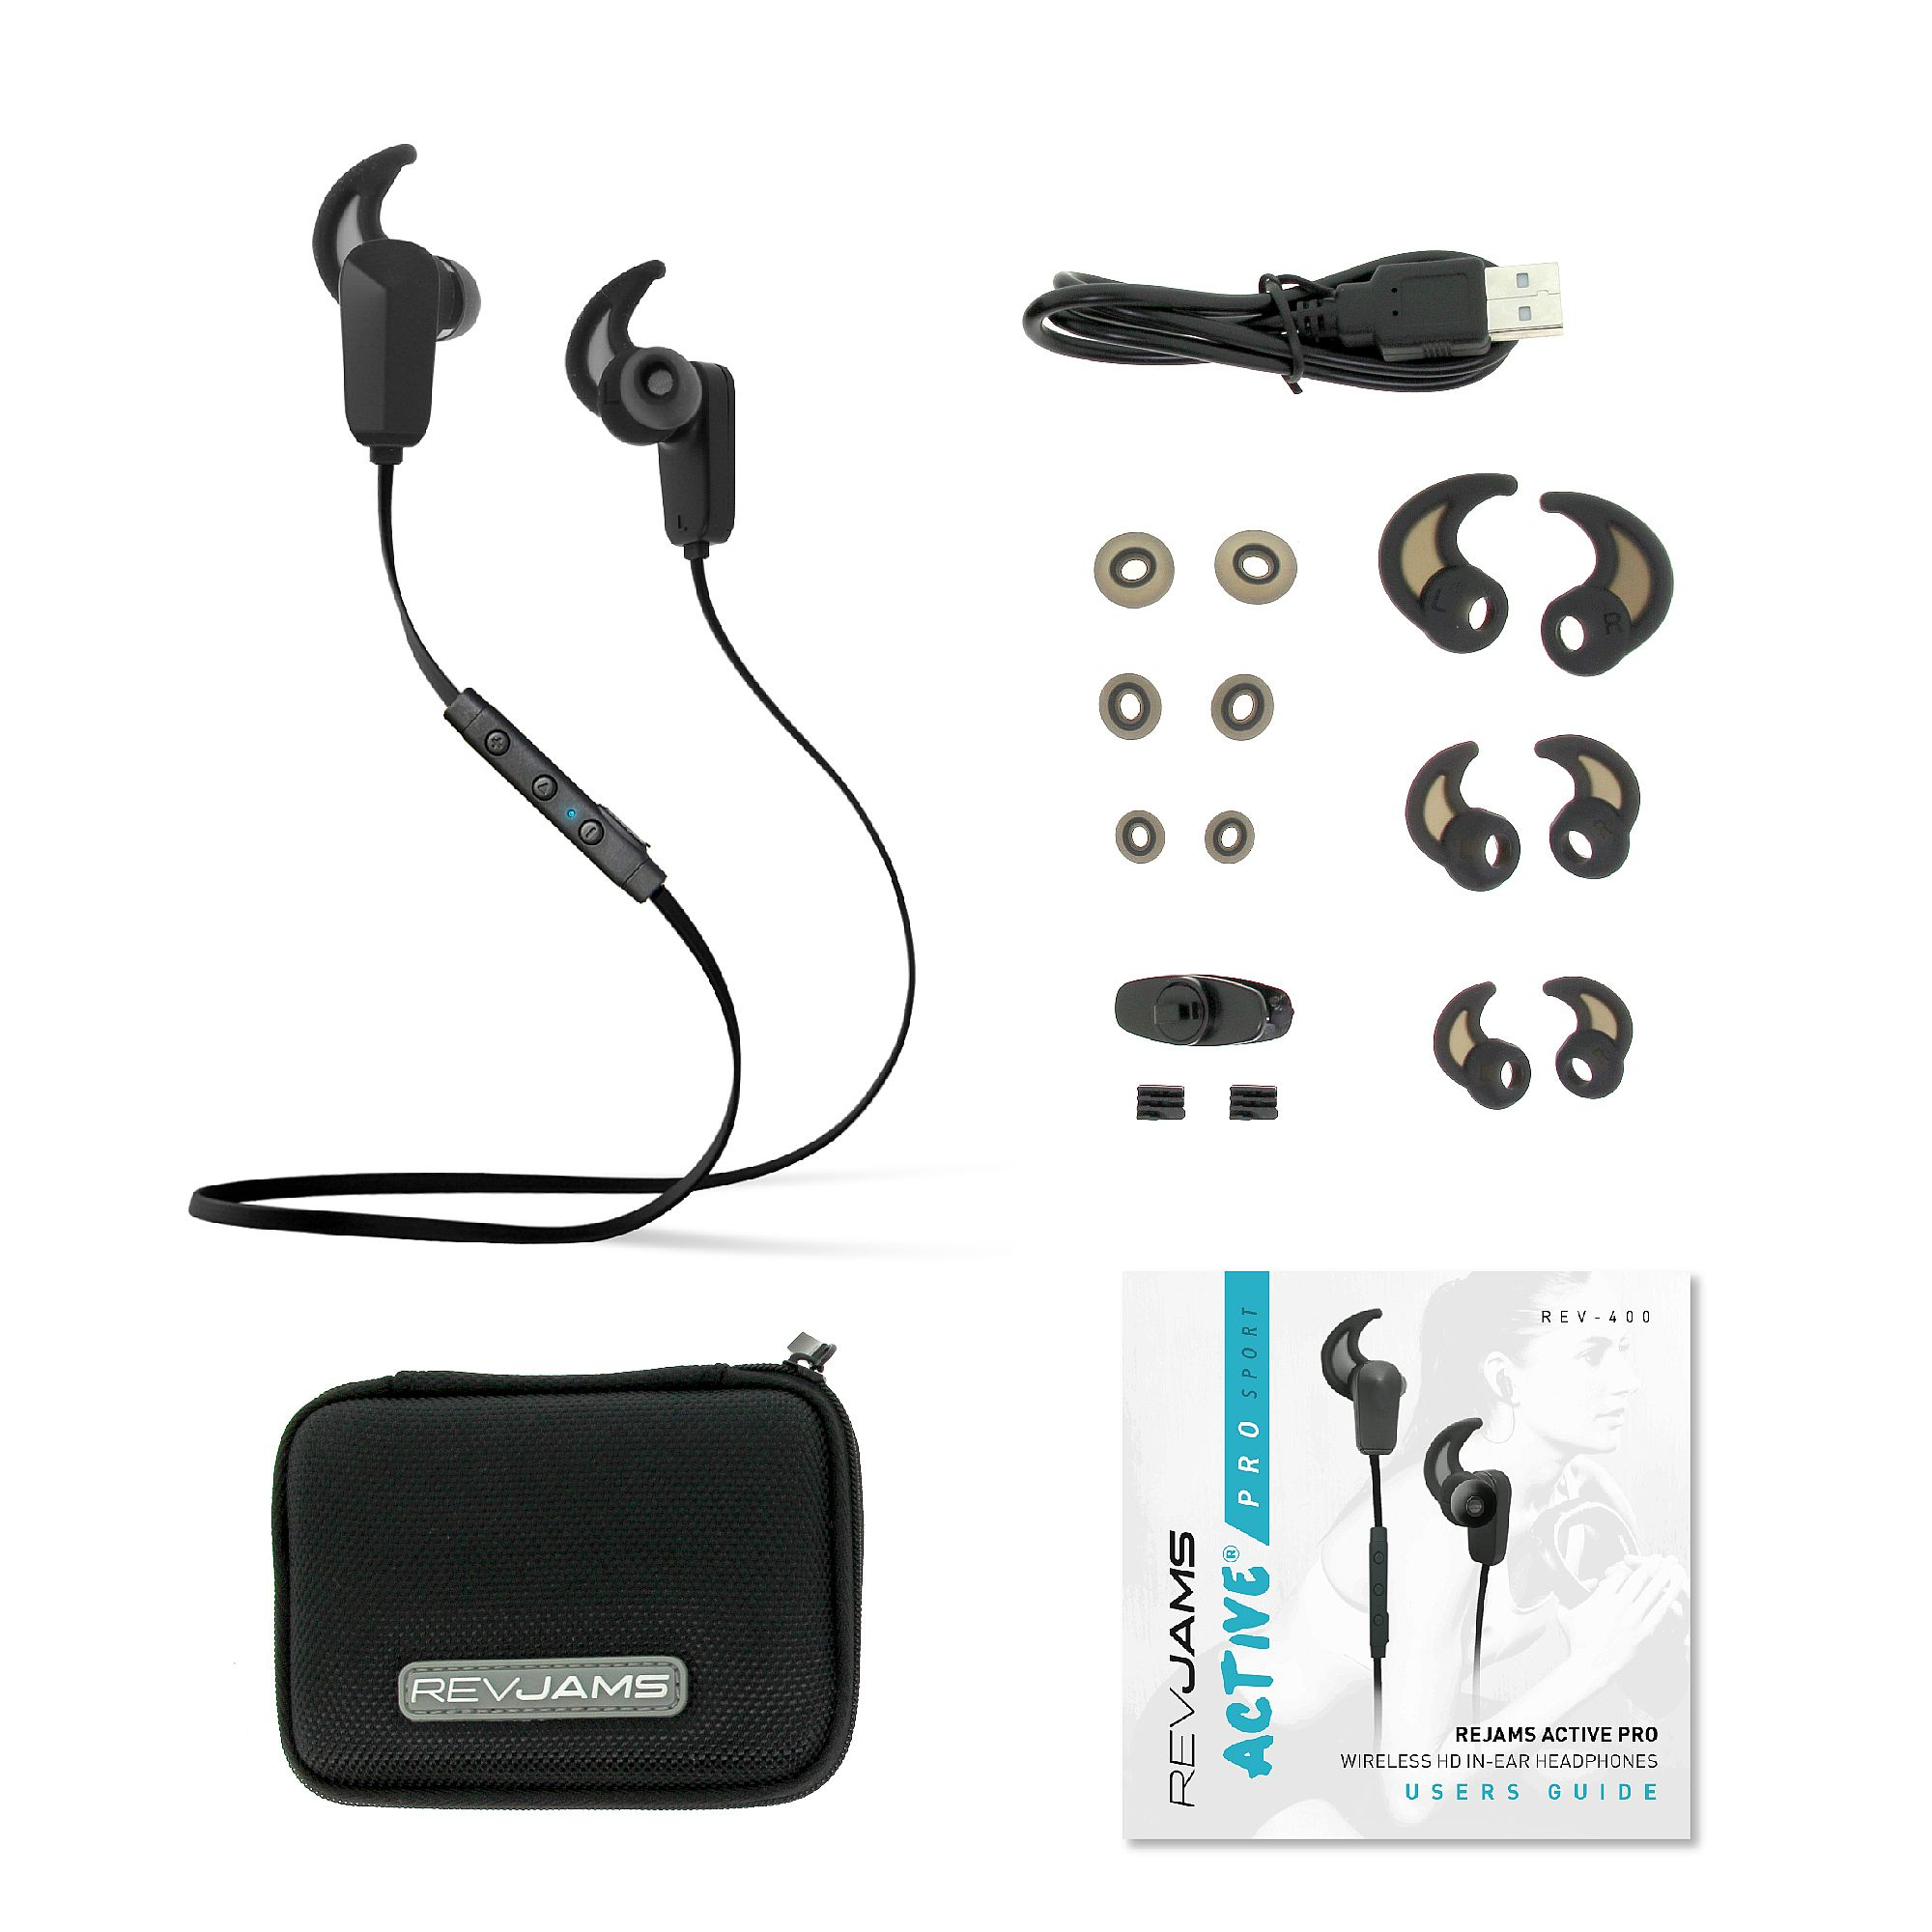 revjams active pro wireless in ear bluetooth ear buds water resistant and sweat proof with. Black Bedroom Furniture Sets. Home Design Ideas